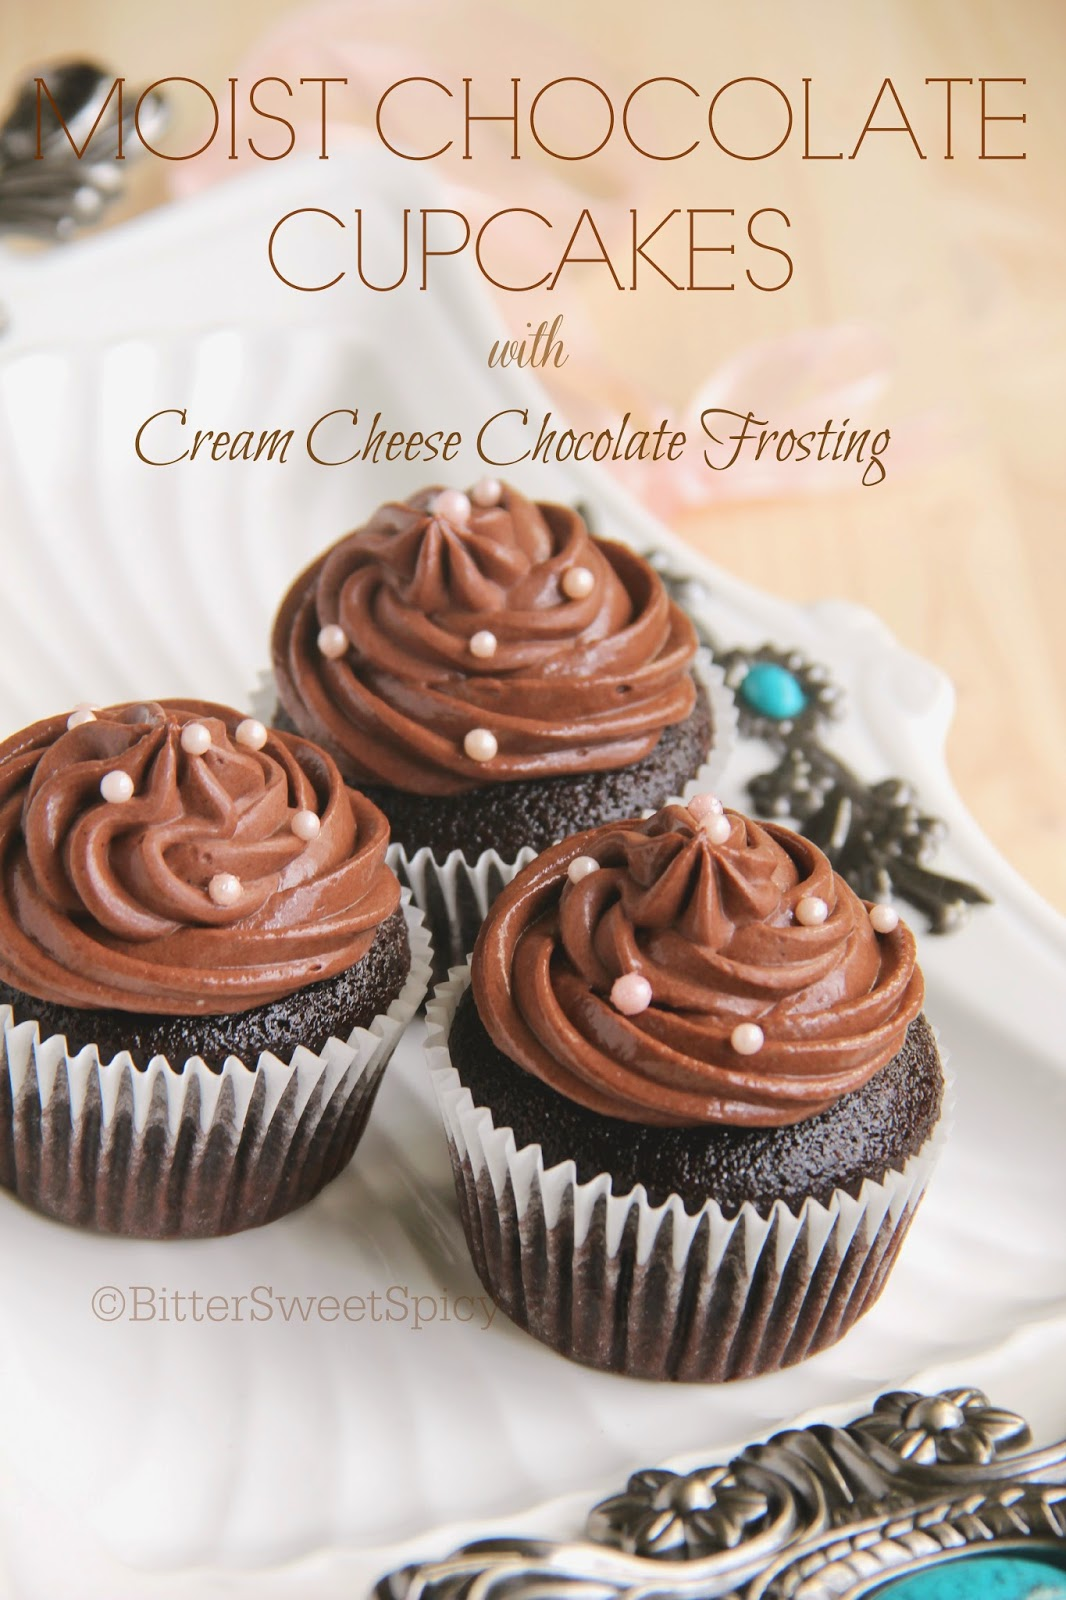 ... : Moist Chocolate Cupcakes with Cream Cheese Chocolate Frosting